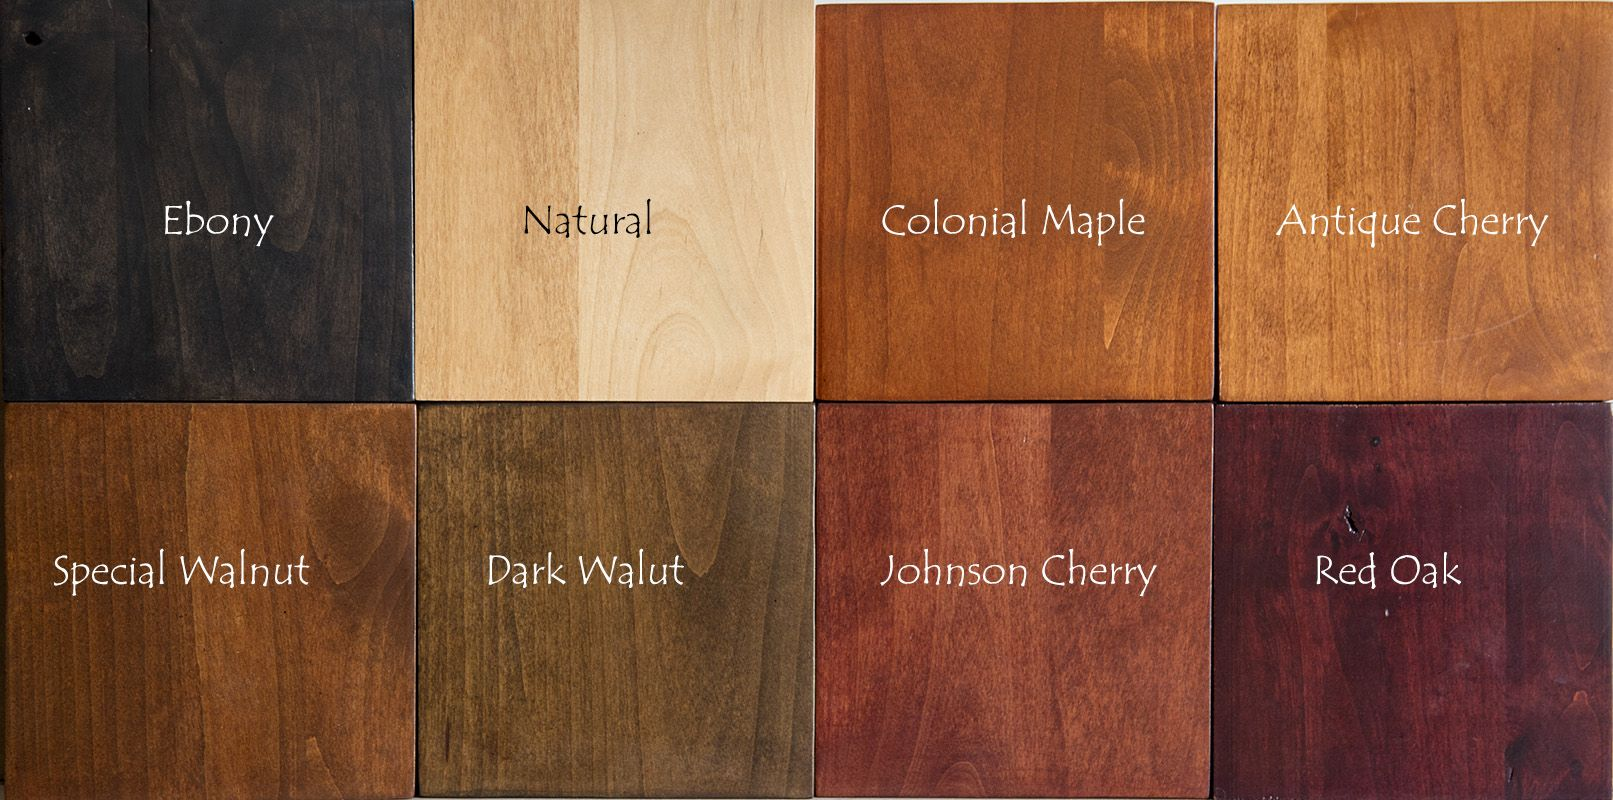 Knotty Alder Stain Samples Indirect Lighting | wood ...